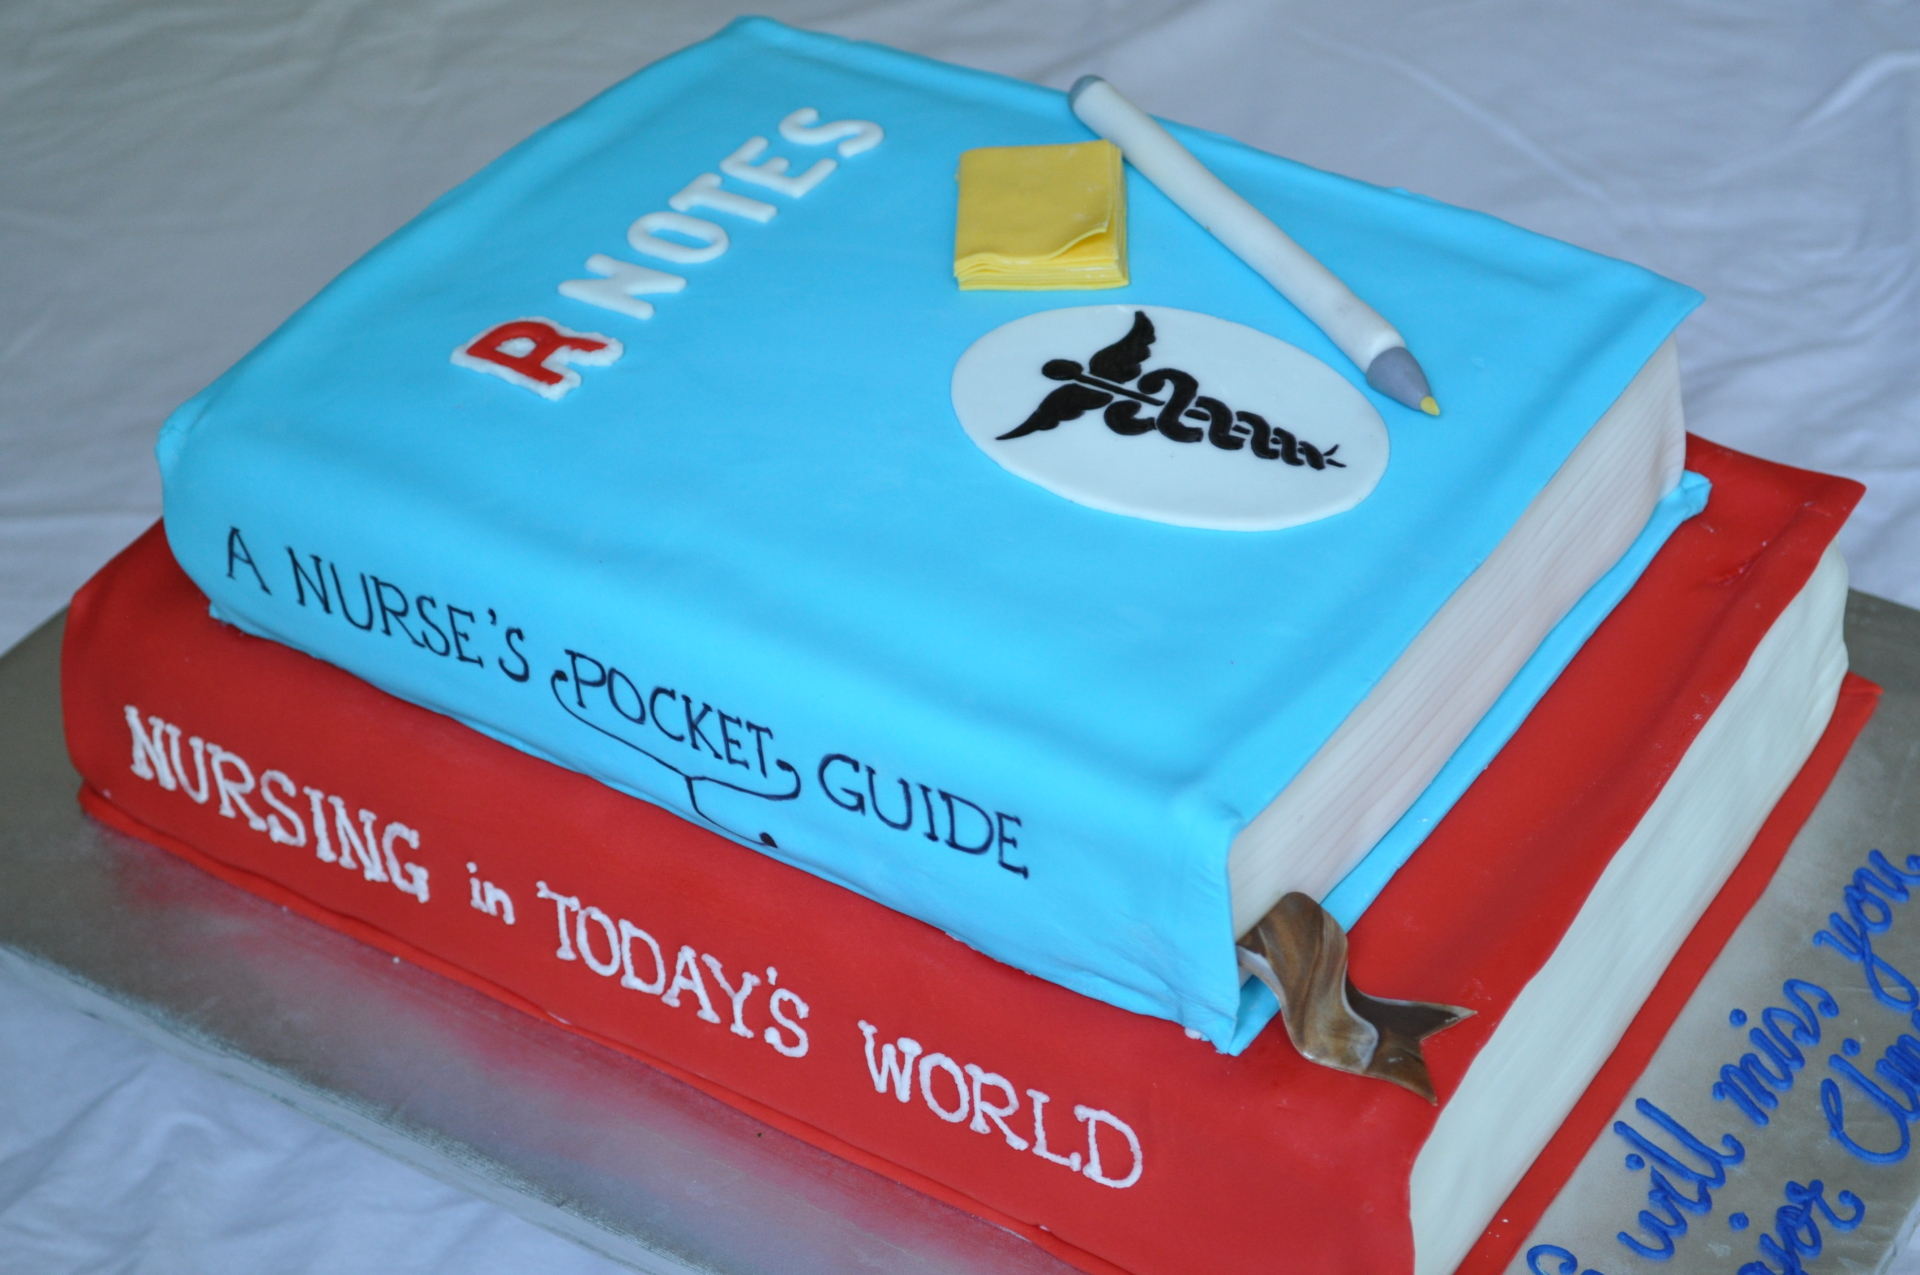 Graduation books cake, medical books cake